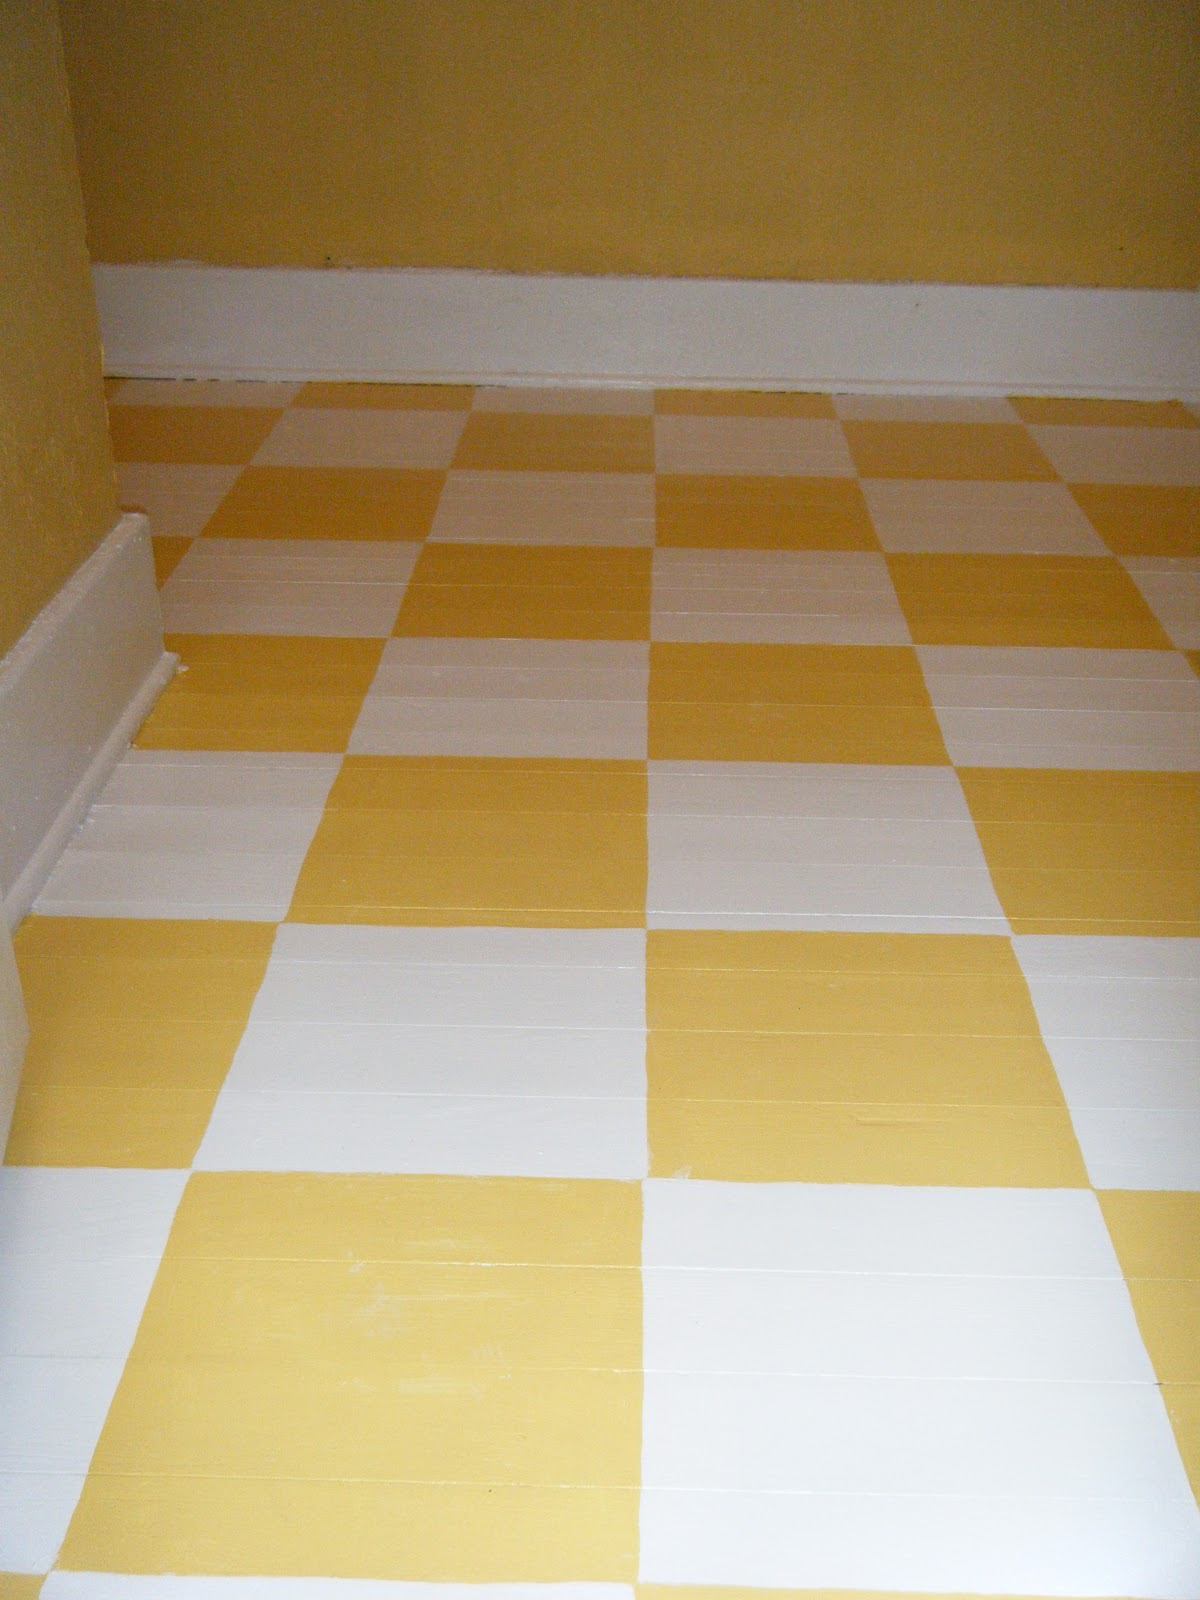 Creativity in DIY: You Can Do It!: Paint a wood floor? Why not?